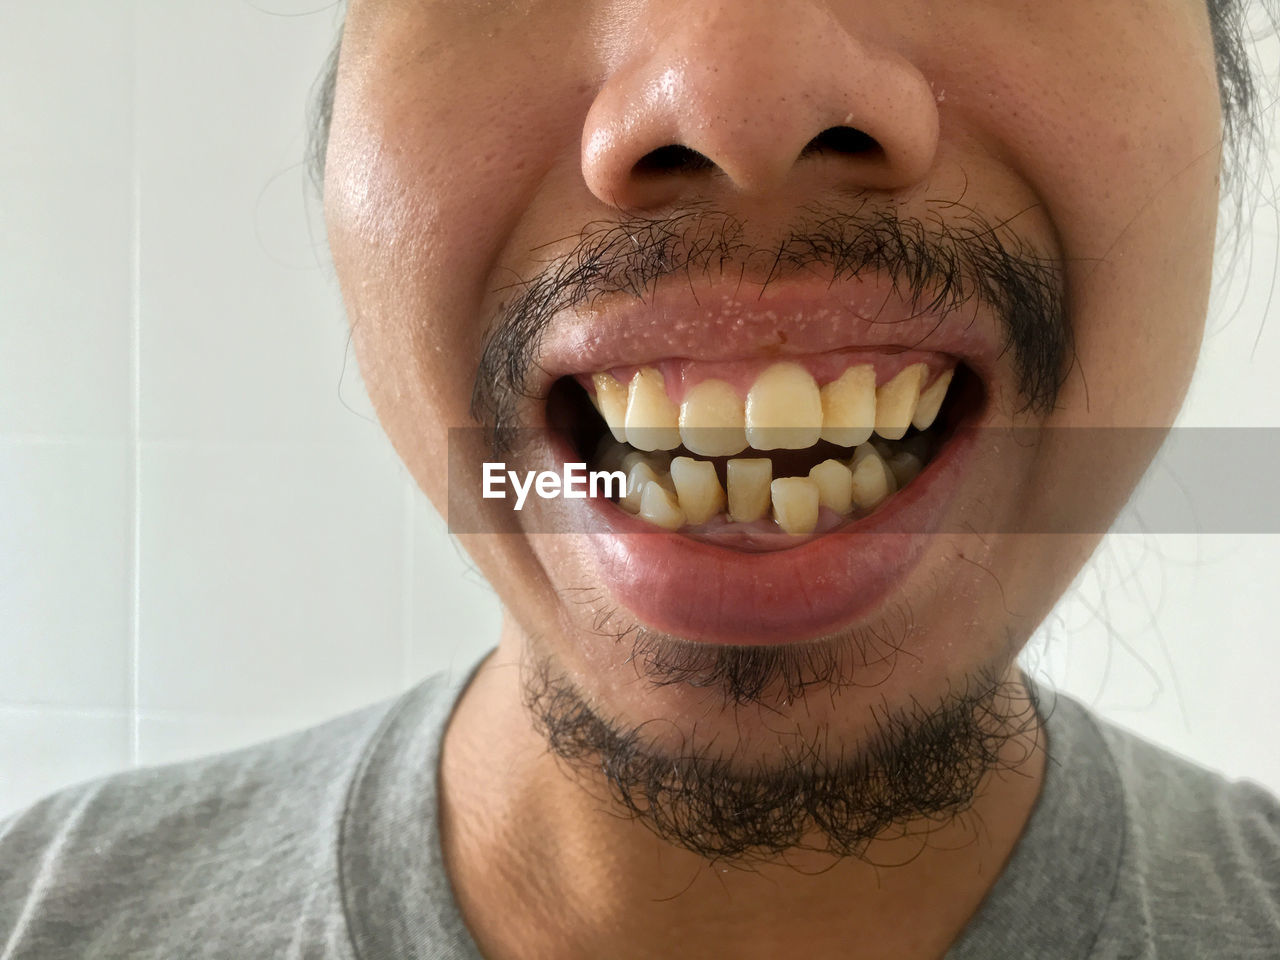 one person, close-up, human body part, indoors, front view, portrait, human teeth, healthcare and medicine, headshot, facial hair, beard, lifestyles, body part, smiling, men, young adult, human mouth, teeth, adult, human face, human lips, mouth open